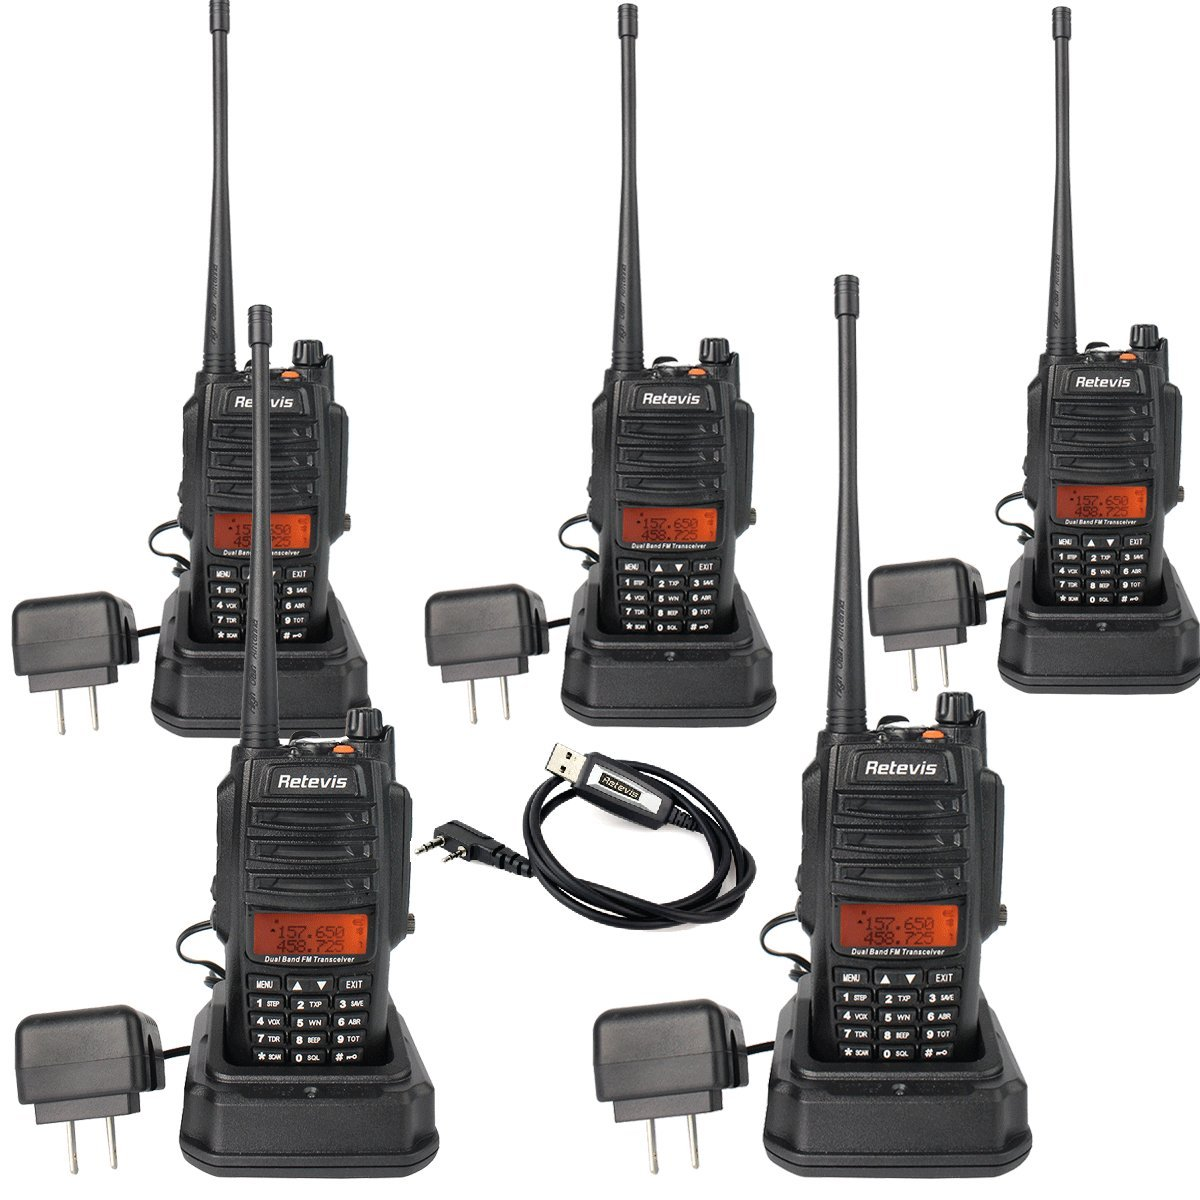 Retevis RT6 2 Way Radio IP67 Waterproof and Dust Proof Dual Band VHF/UHF 136-174Mhz/400-520Mhz 5/3/1W Ham Radio with Waterproof Earpiece (5 Pack) and Programming Cable (1 Pack)